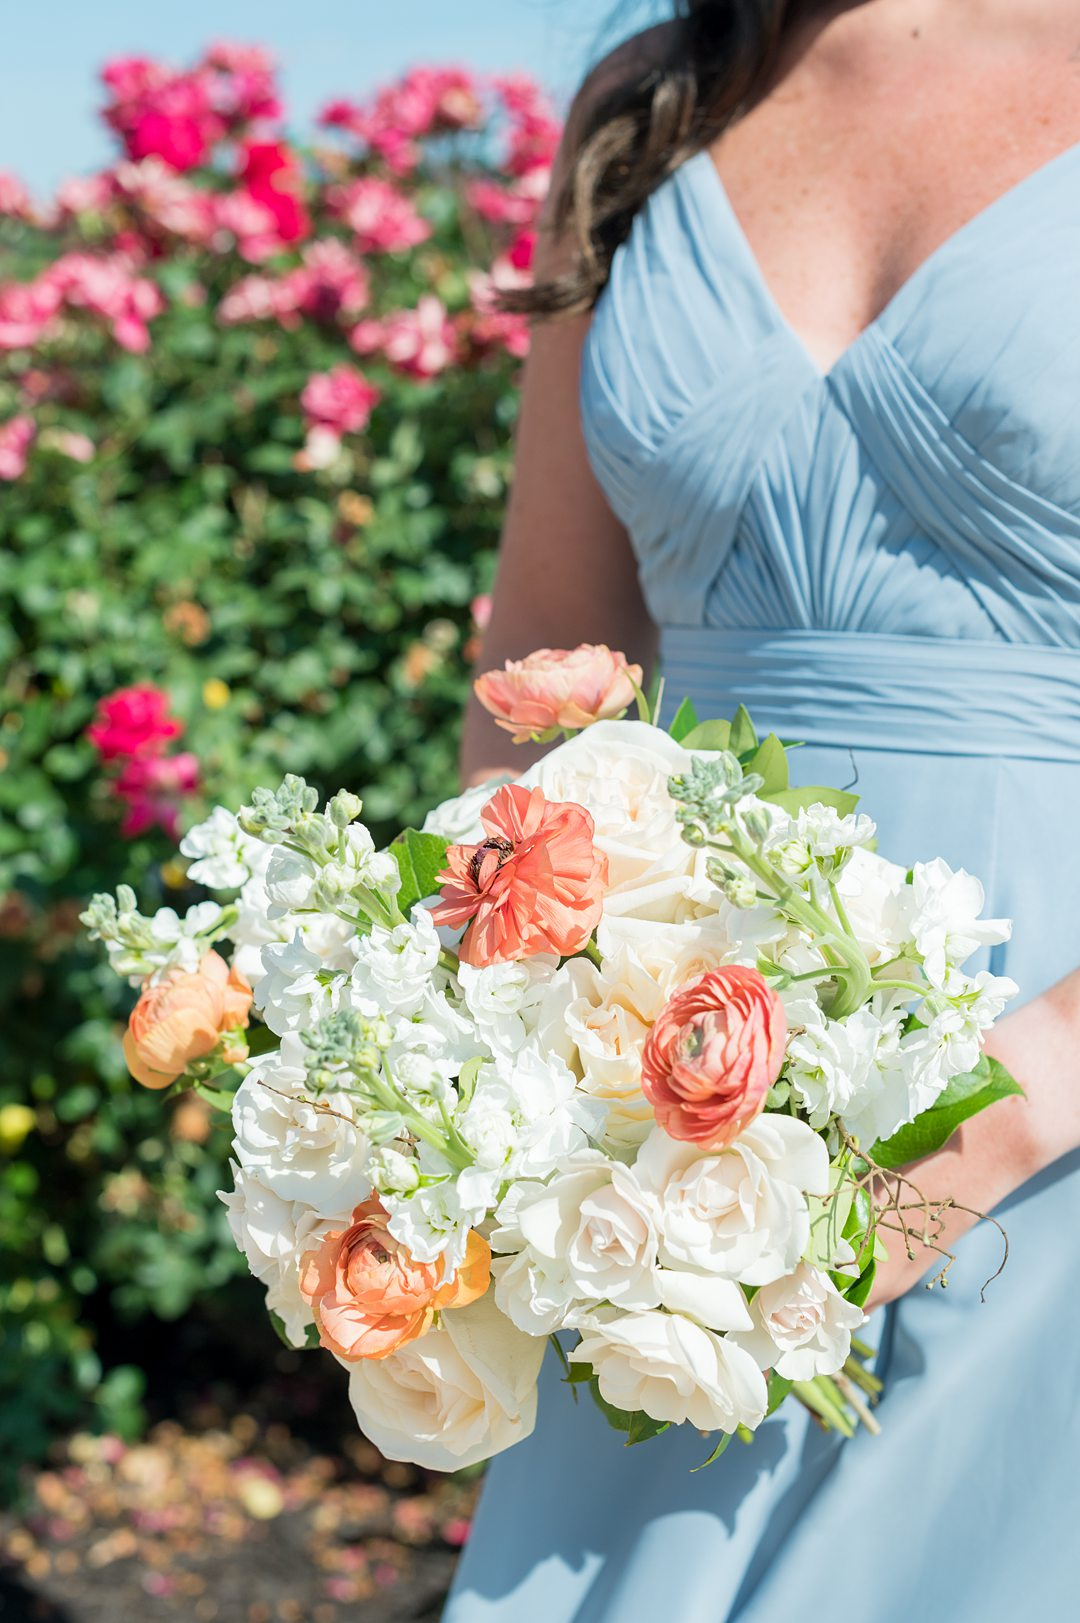 Bridesmaid bouquet of white and peach flowers including hydrangea and ranunculus, for a small wedding in Charlottesville, VA. Mikkel Paige Photography took pictures at The Lodge at Mount Ida Farm. Planning by Mary Elizabeth Events.